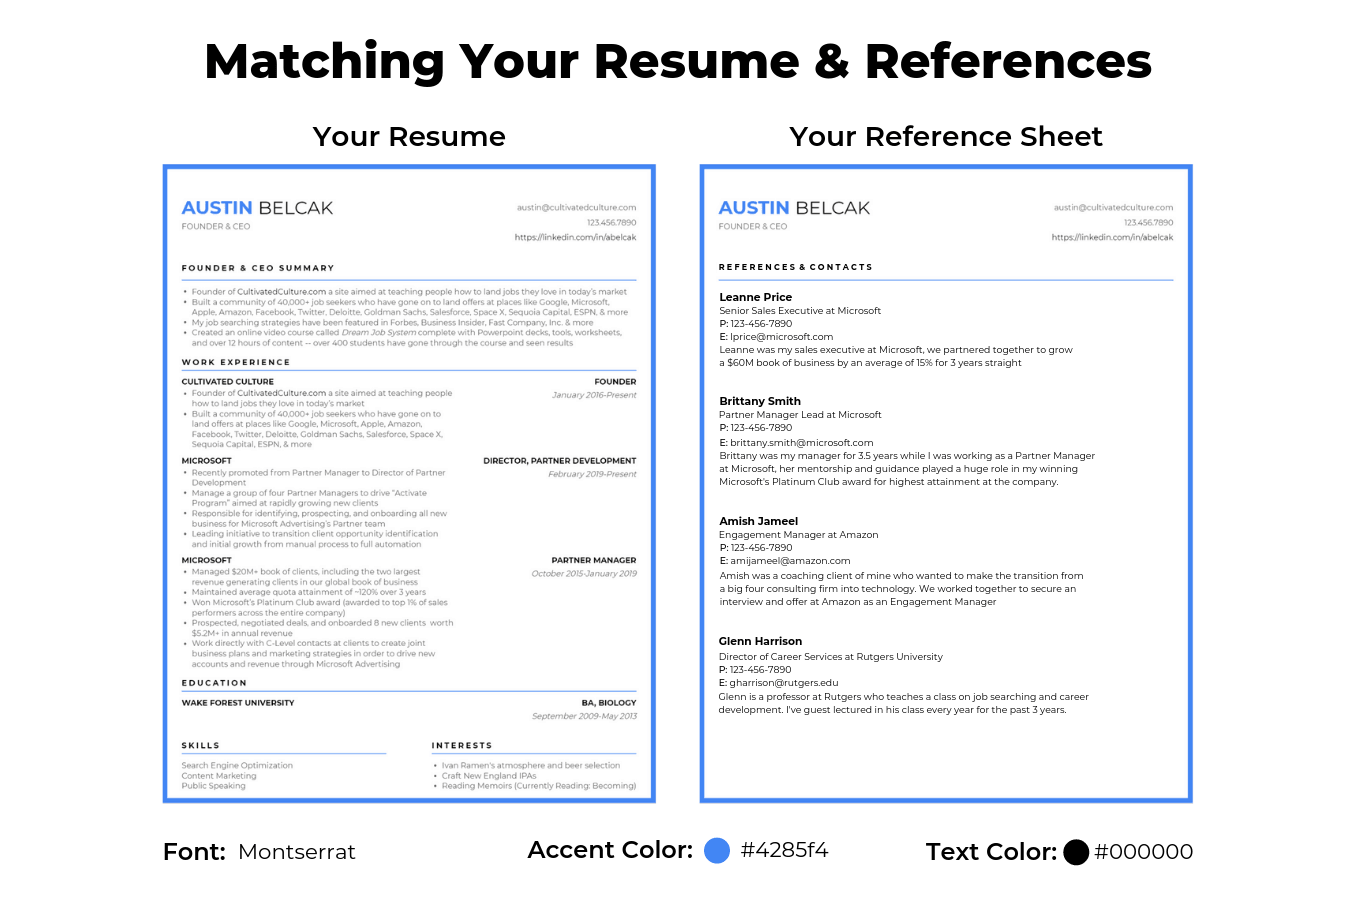 Example of a resume and resume references sheet with matching formats and colors